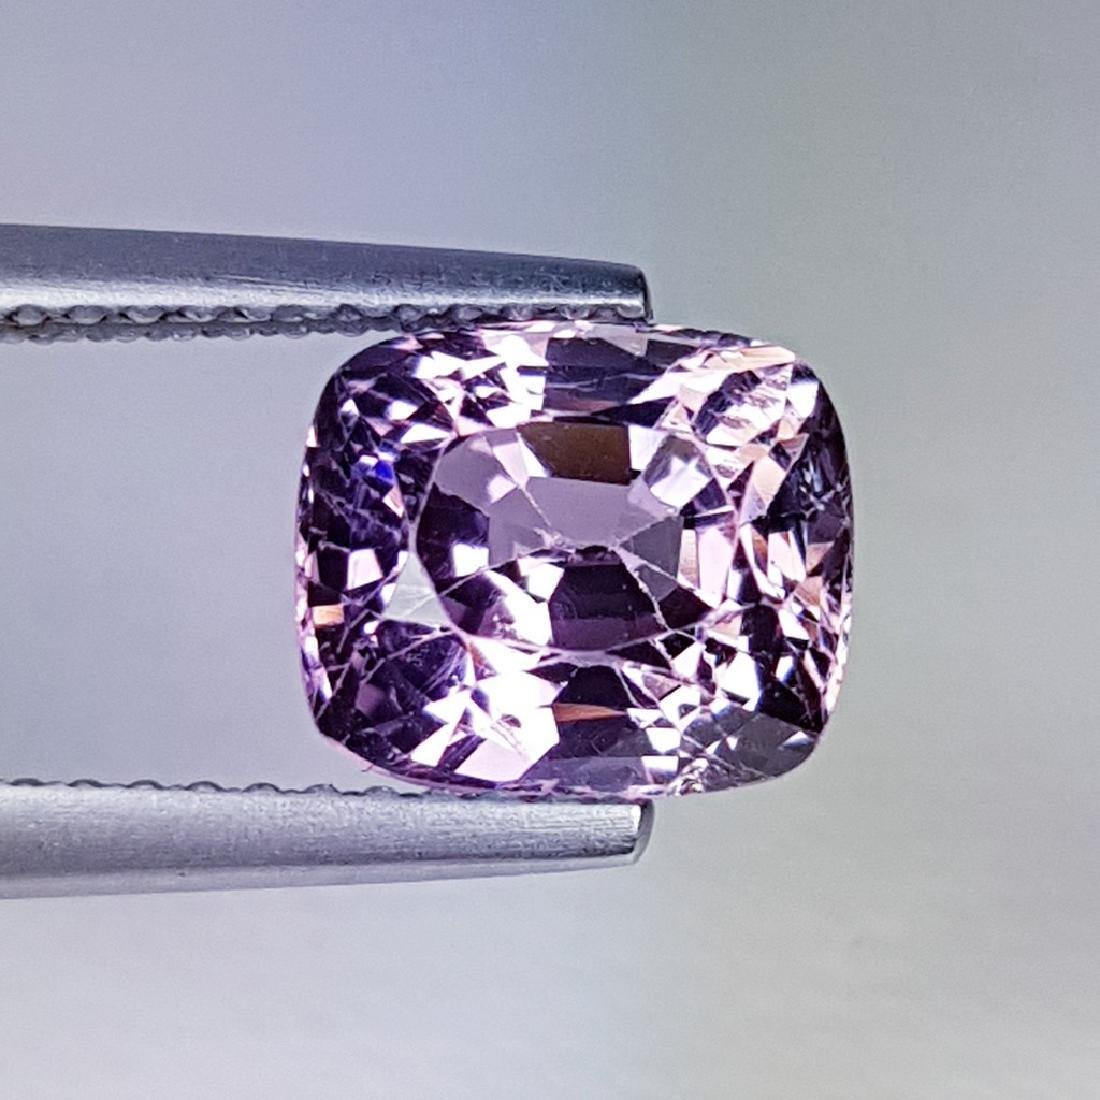 2.75 ct Exclusive Gem Cushion Cut Natural Spinel